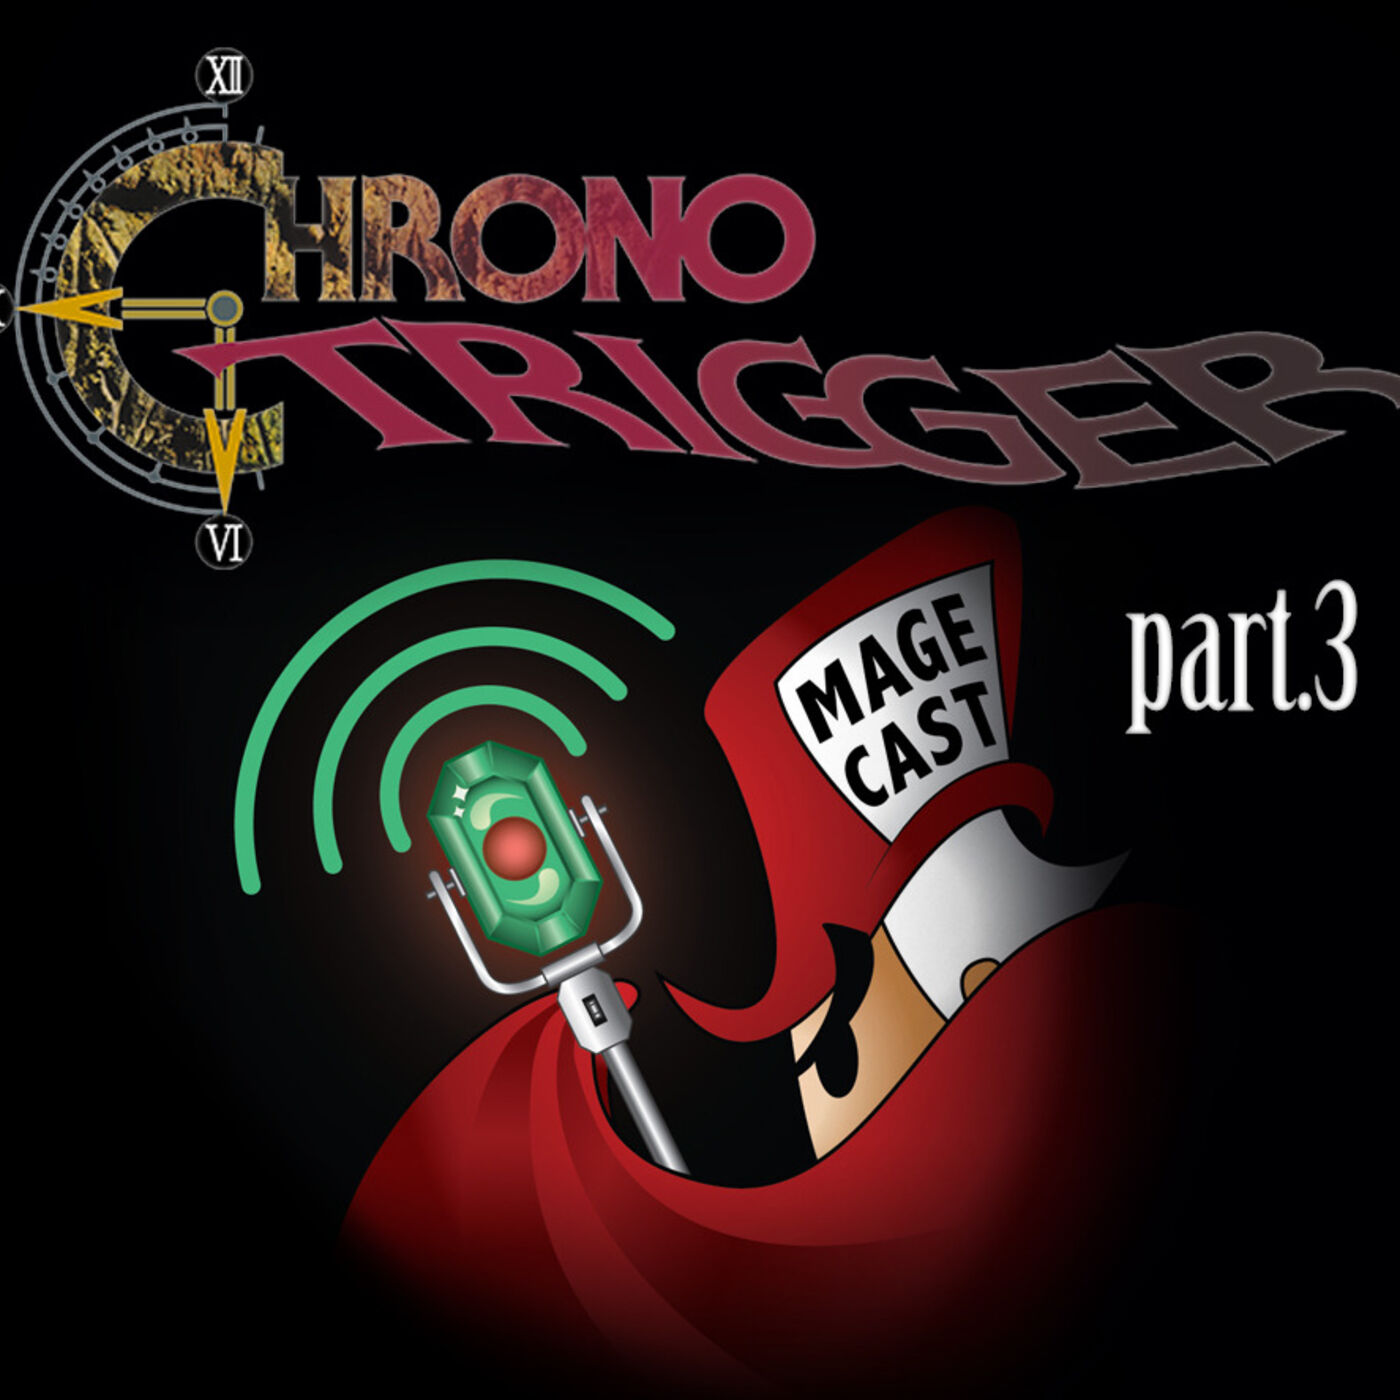 """#027 - """"It's About Time"""" (Chrono Trigger, pt.3)"""